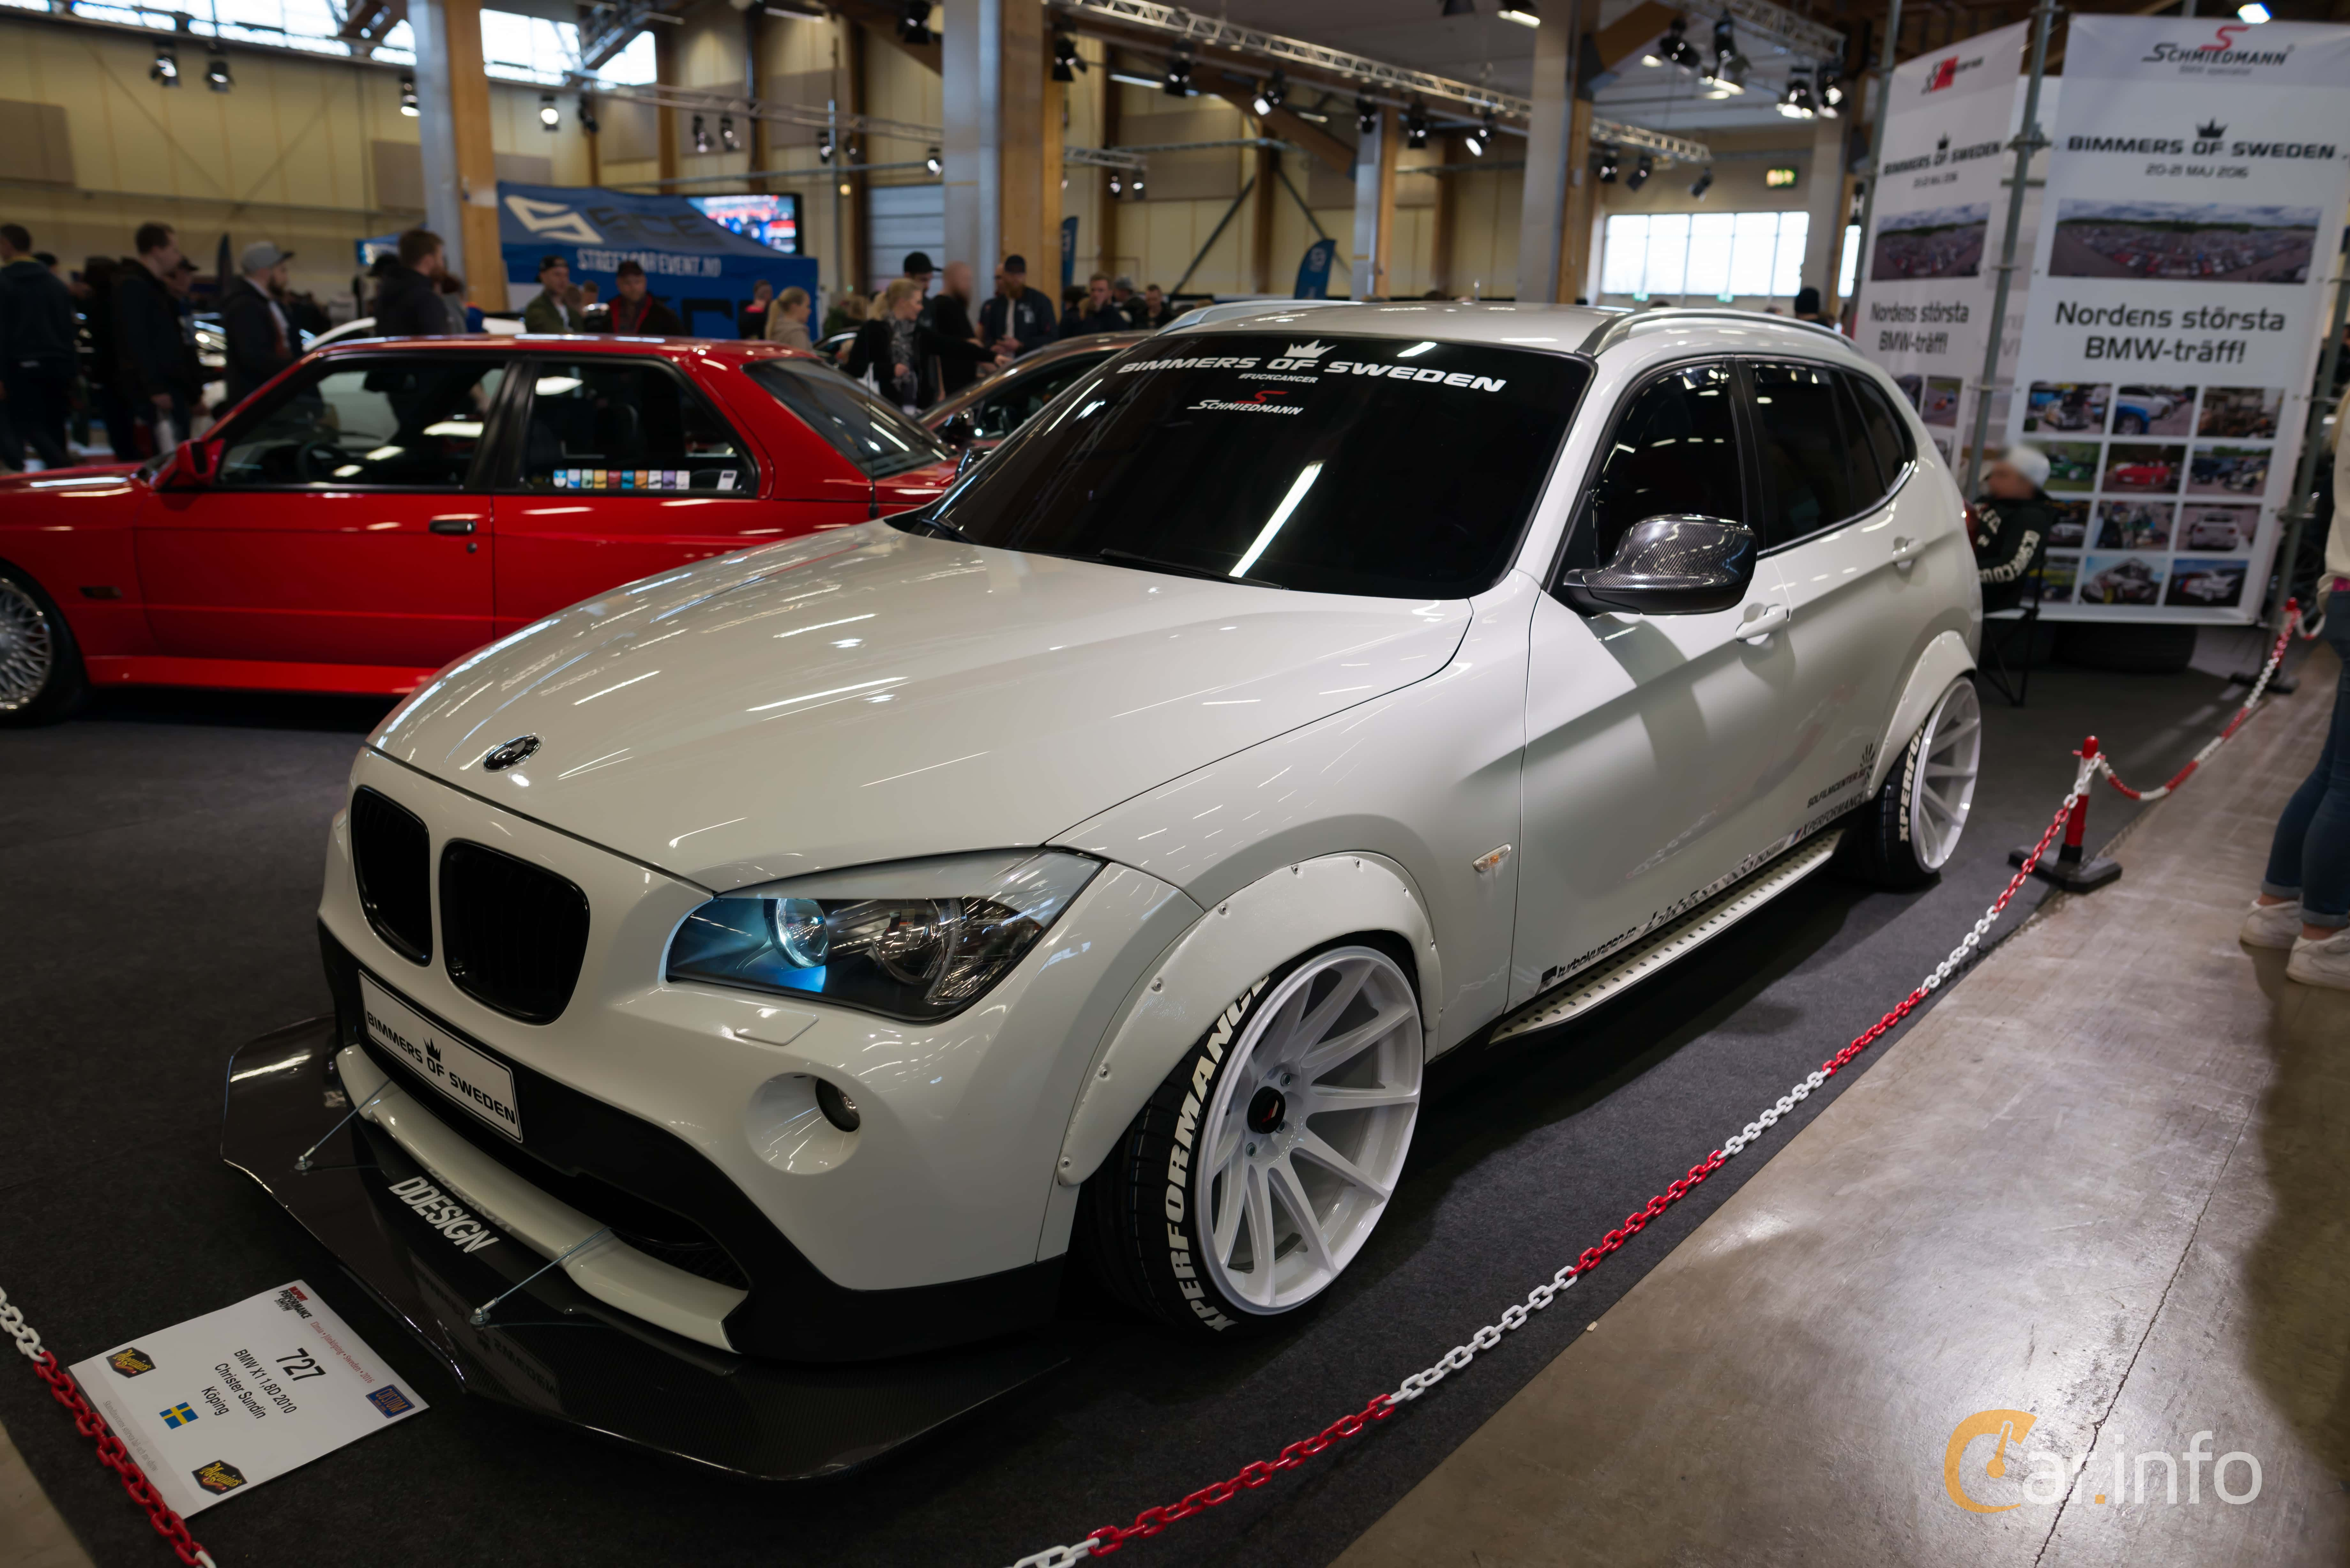 3 Images Of BMW X1 2010 By Johanb